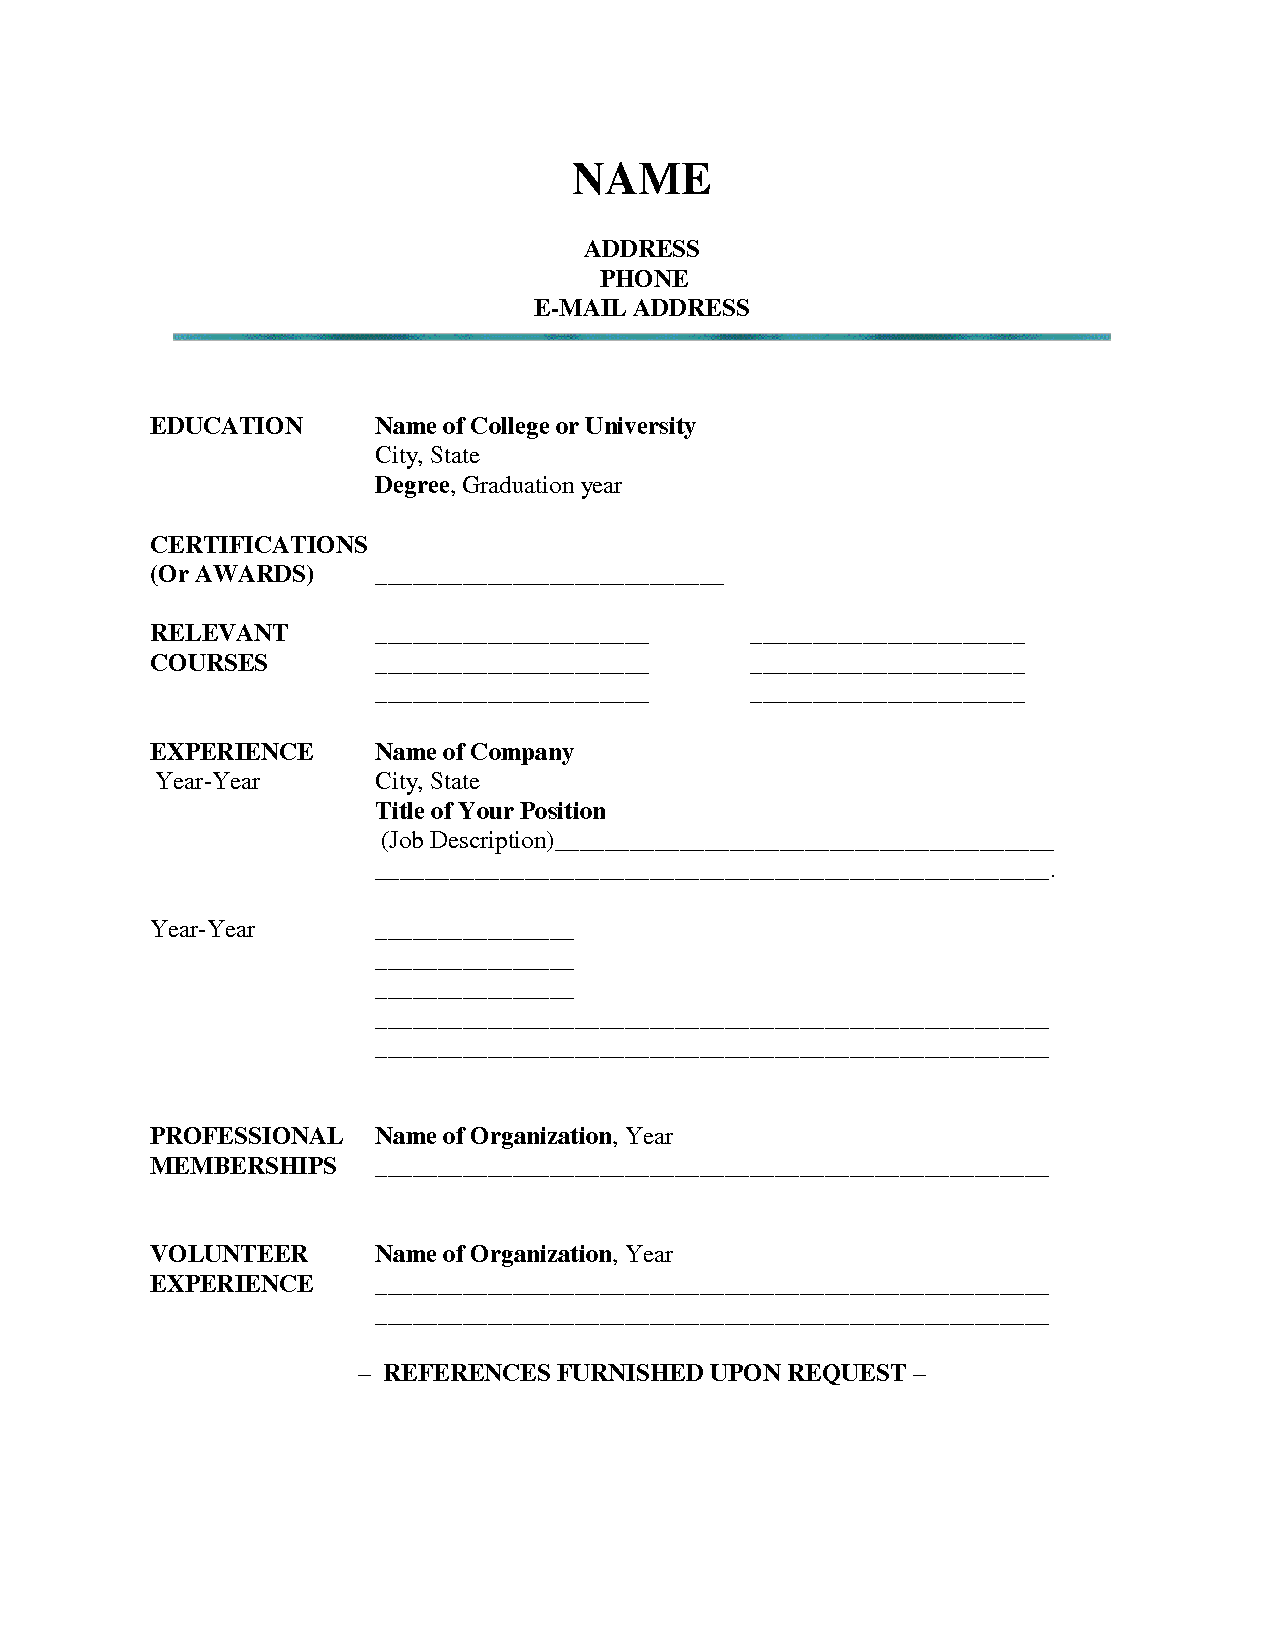 Pro Resume Format Mobile Test Engineer Sample Teaching Builder